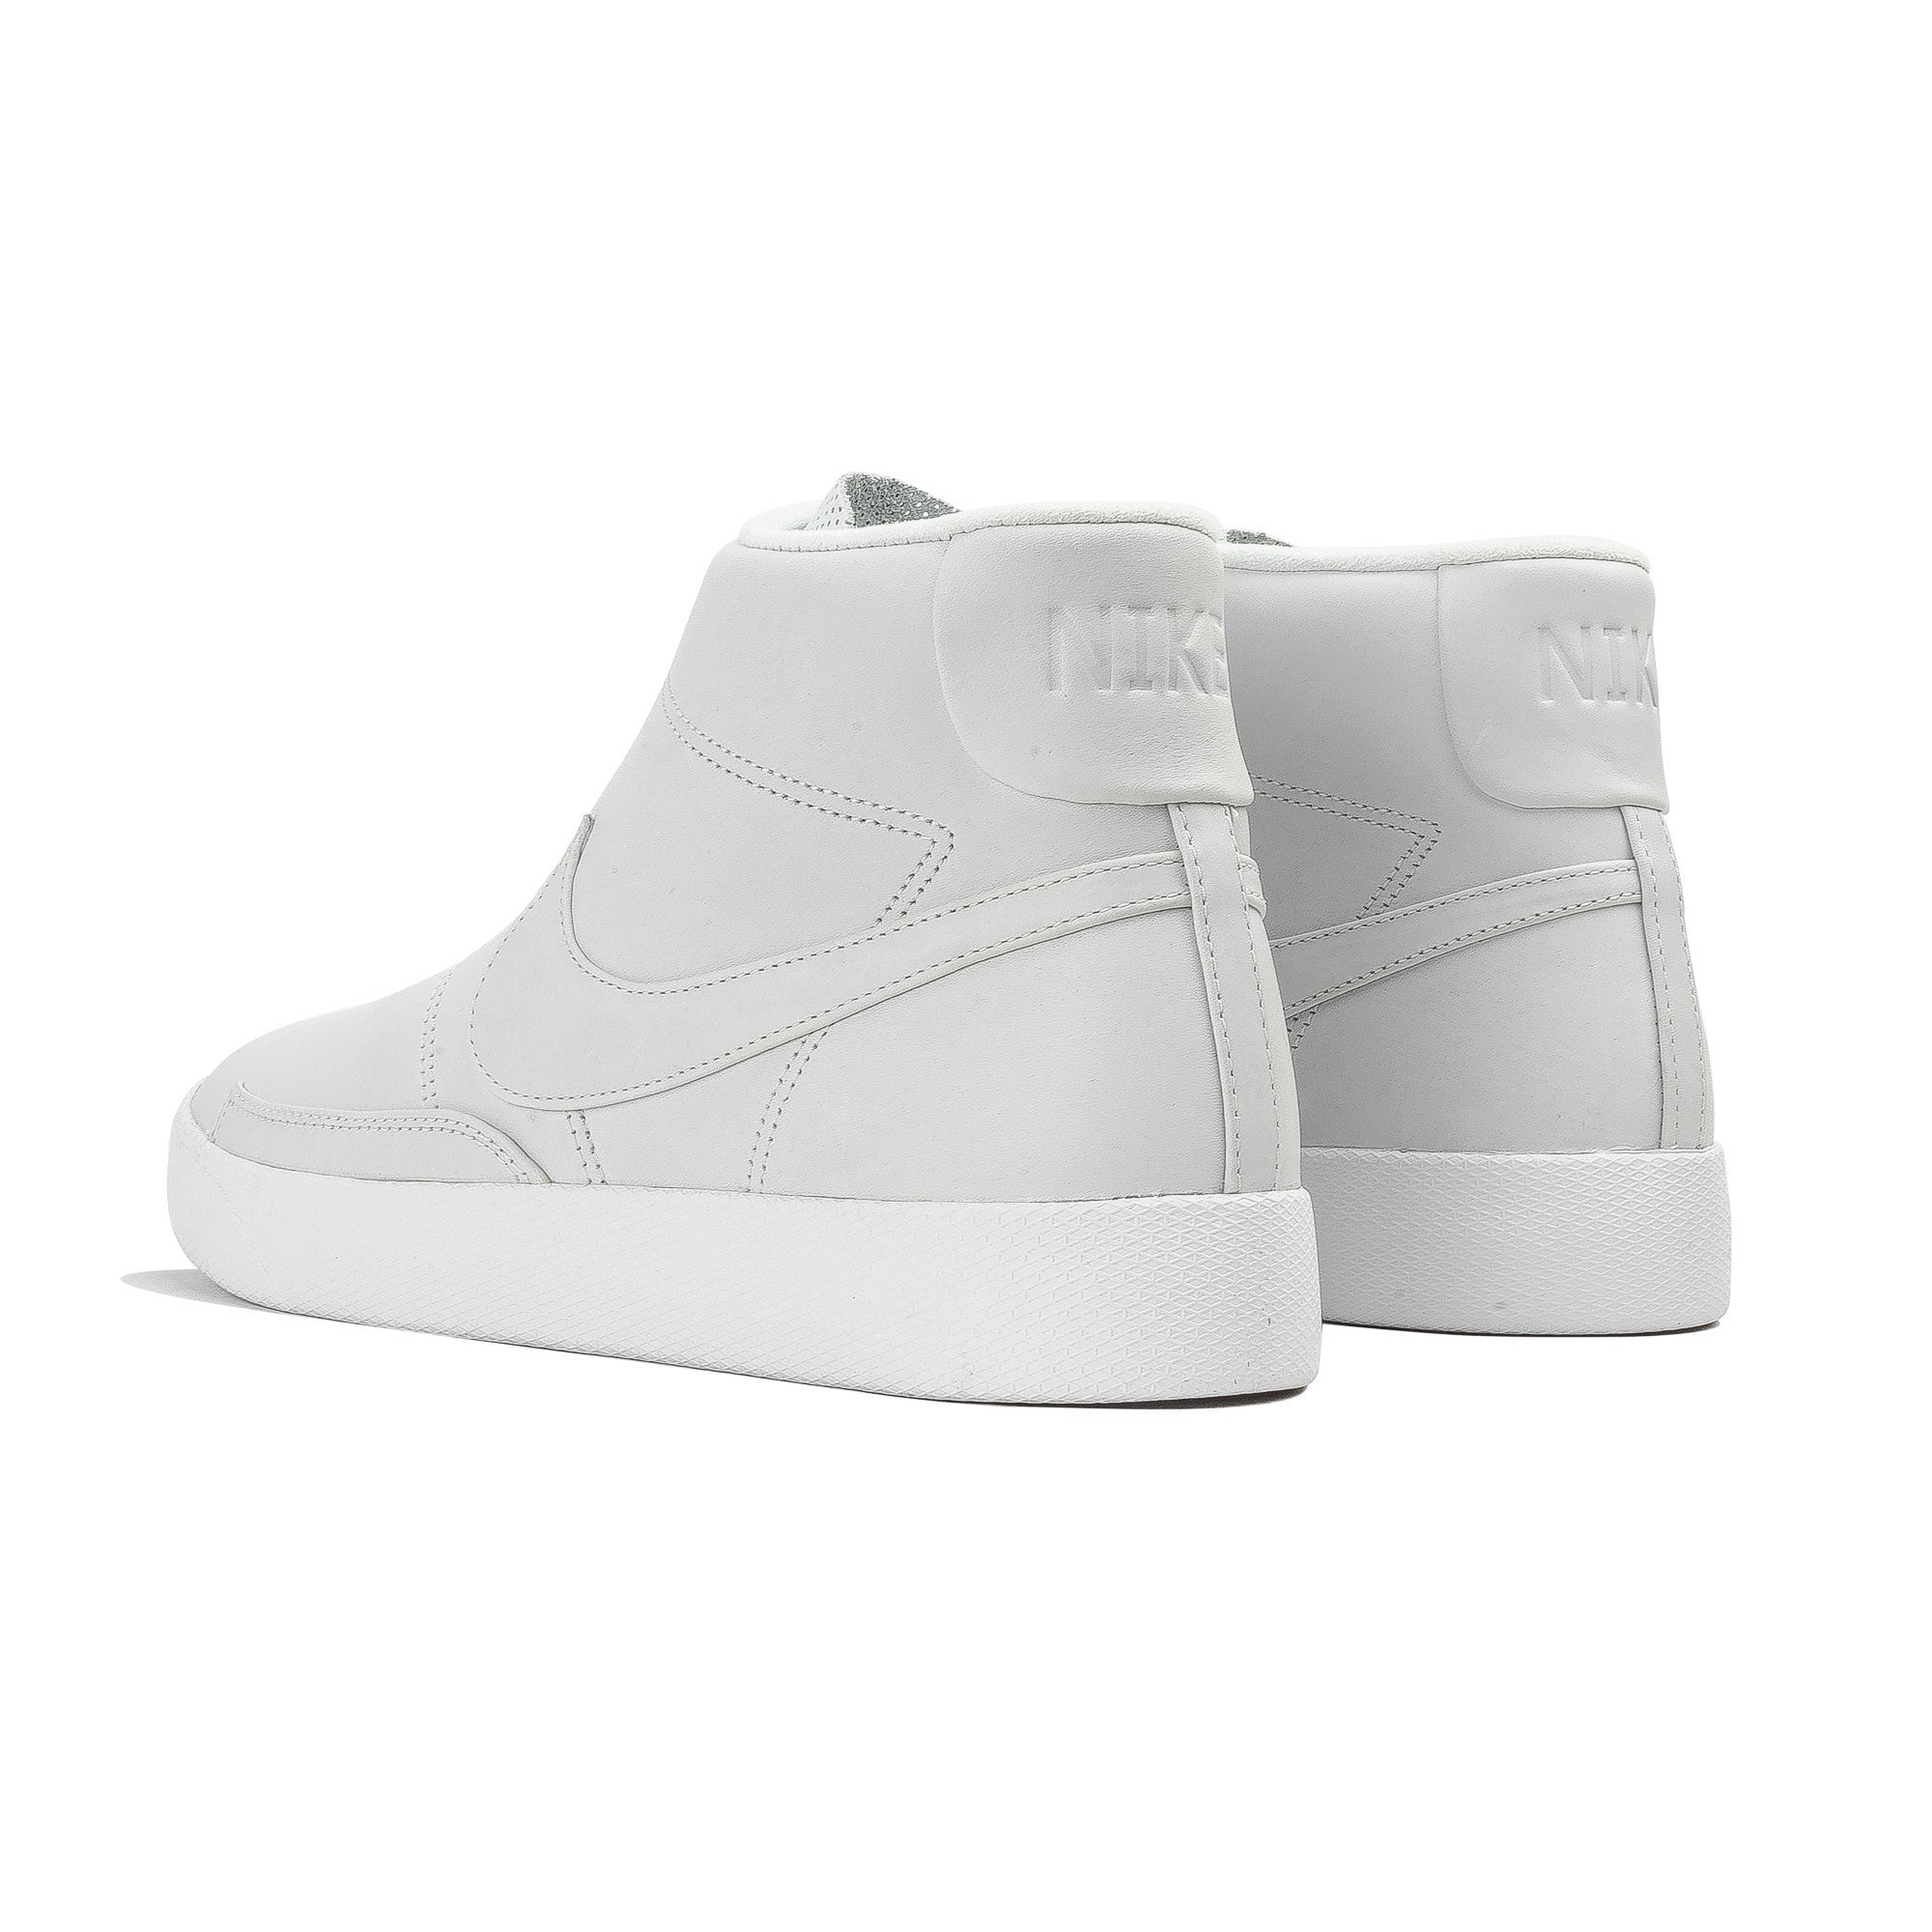 NikeLab Blazer Advanced 874775-100 Off White